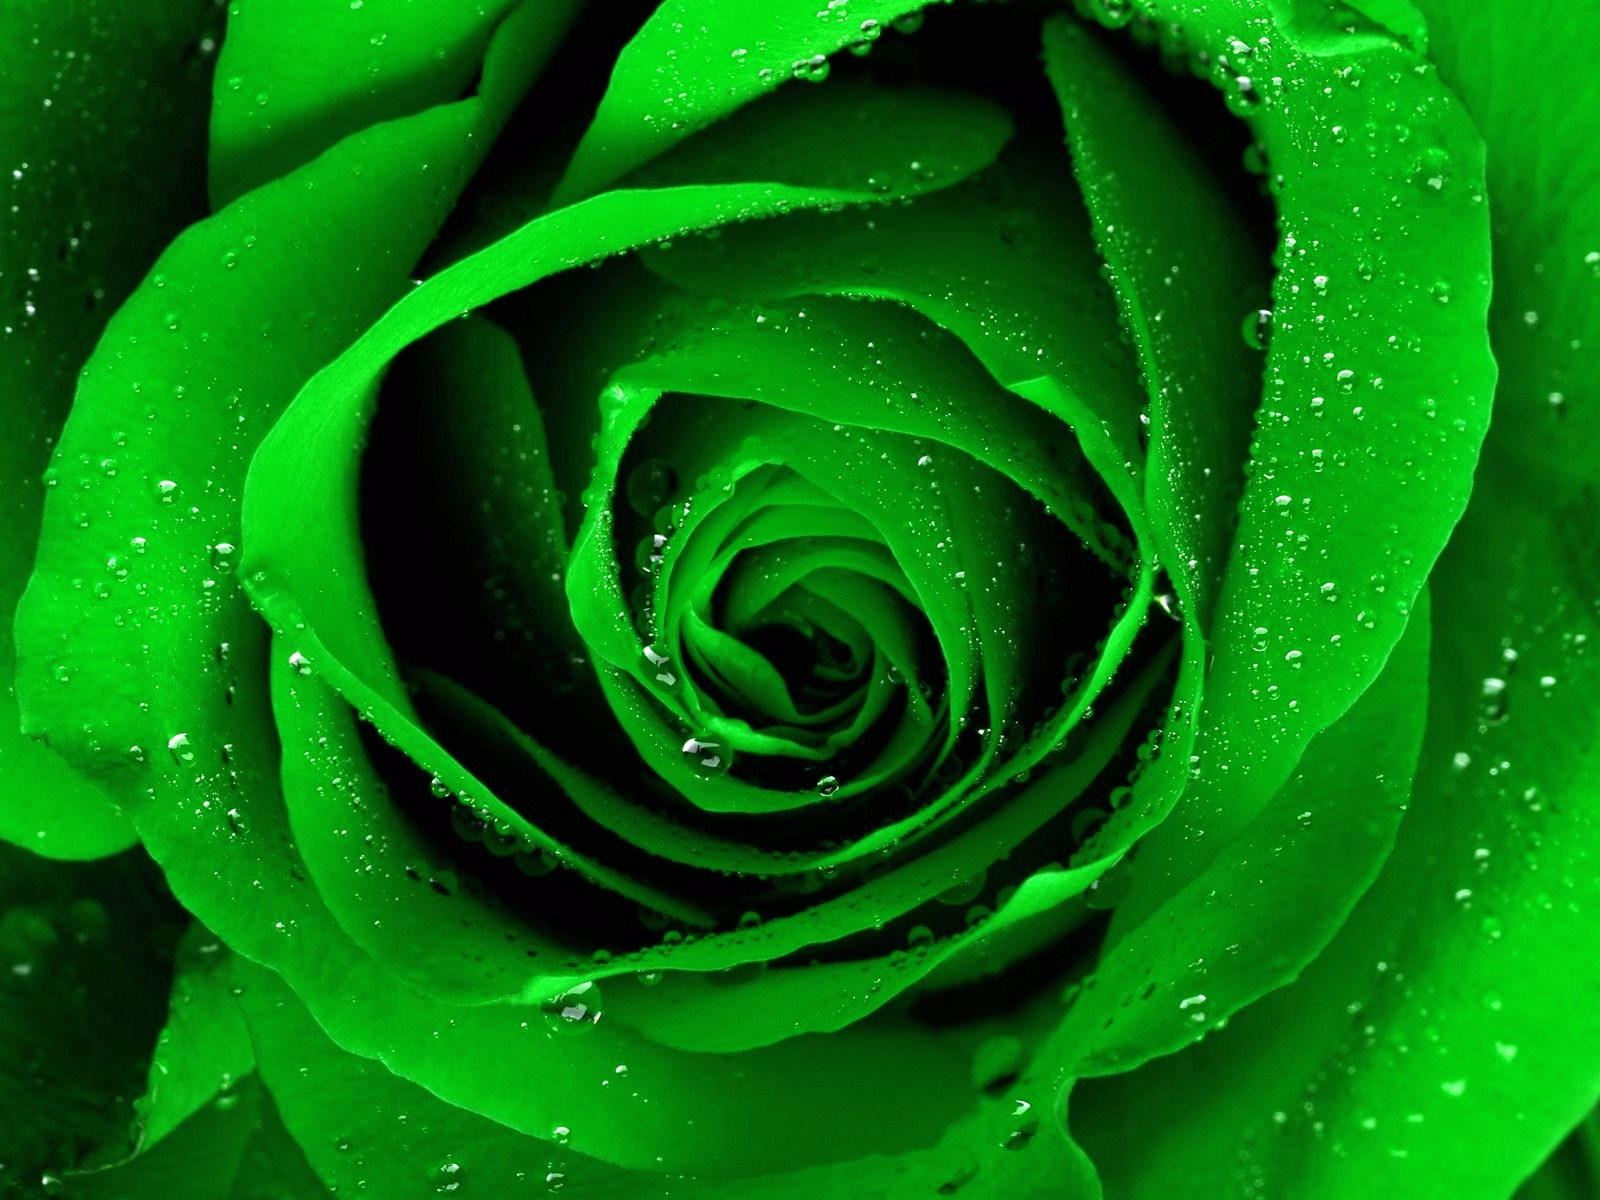 Green Rose Wallpaper HD